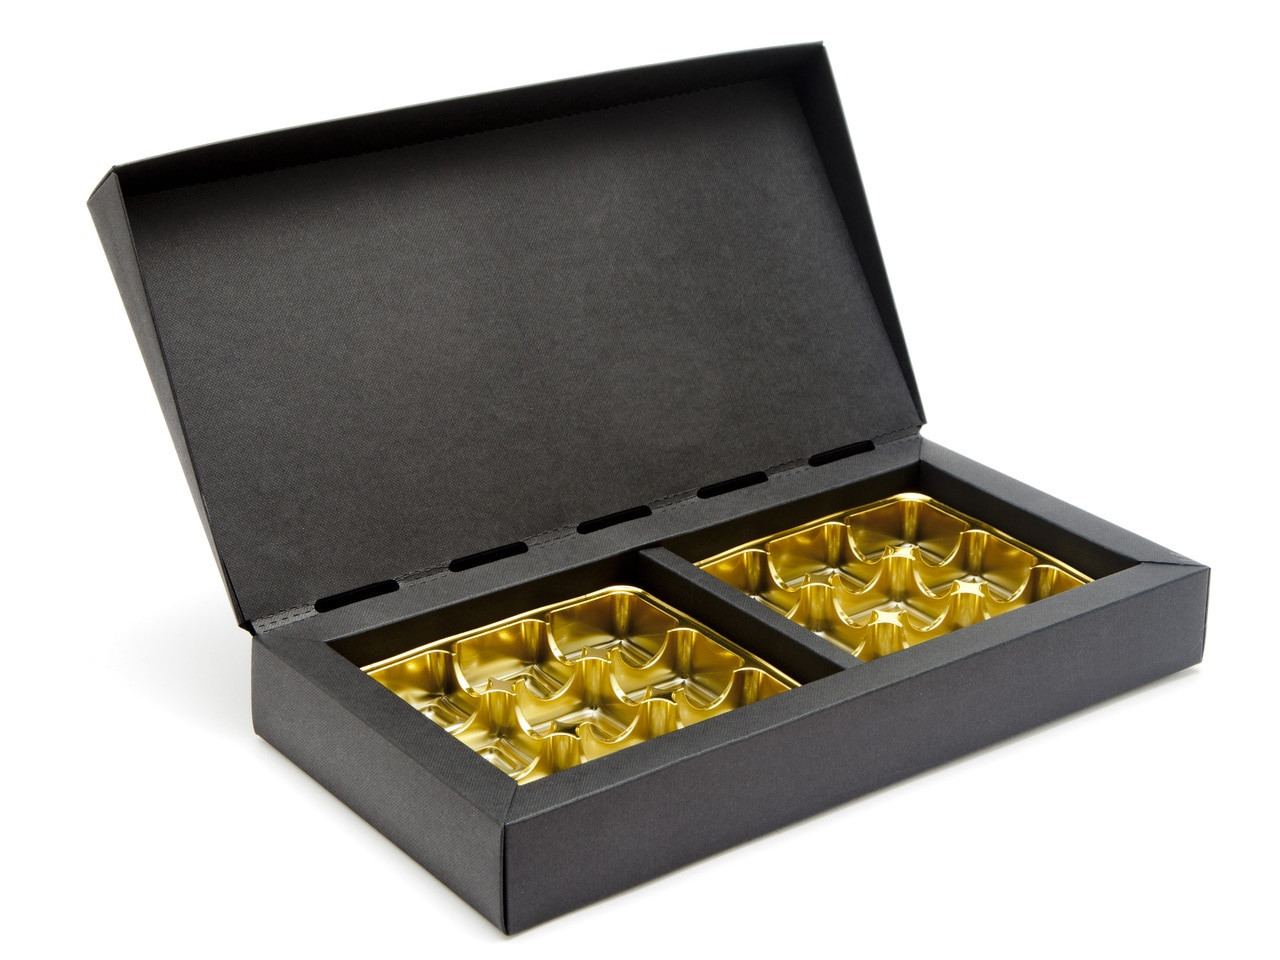 18 Choc Deluxe Gift Box - Black | Meridian Speciality Packaging ...